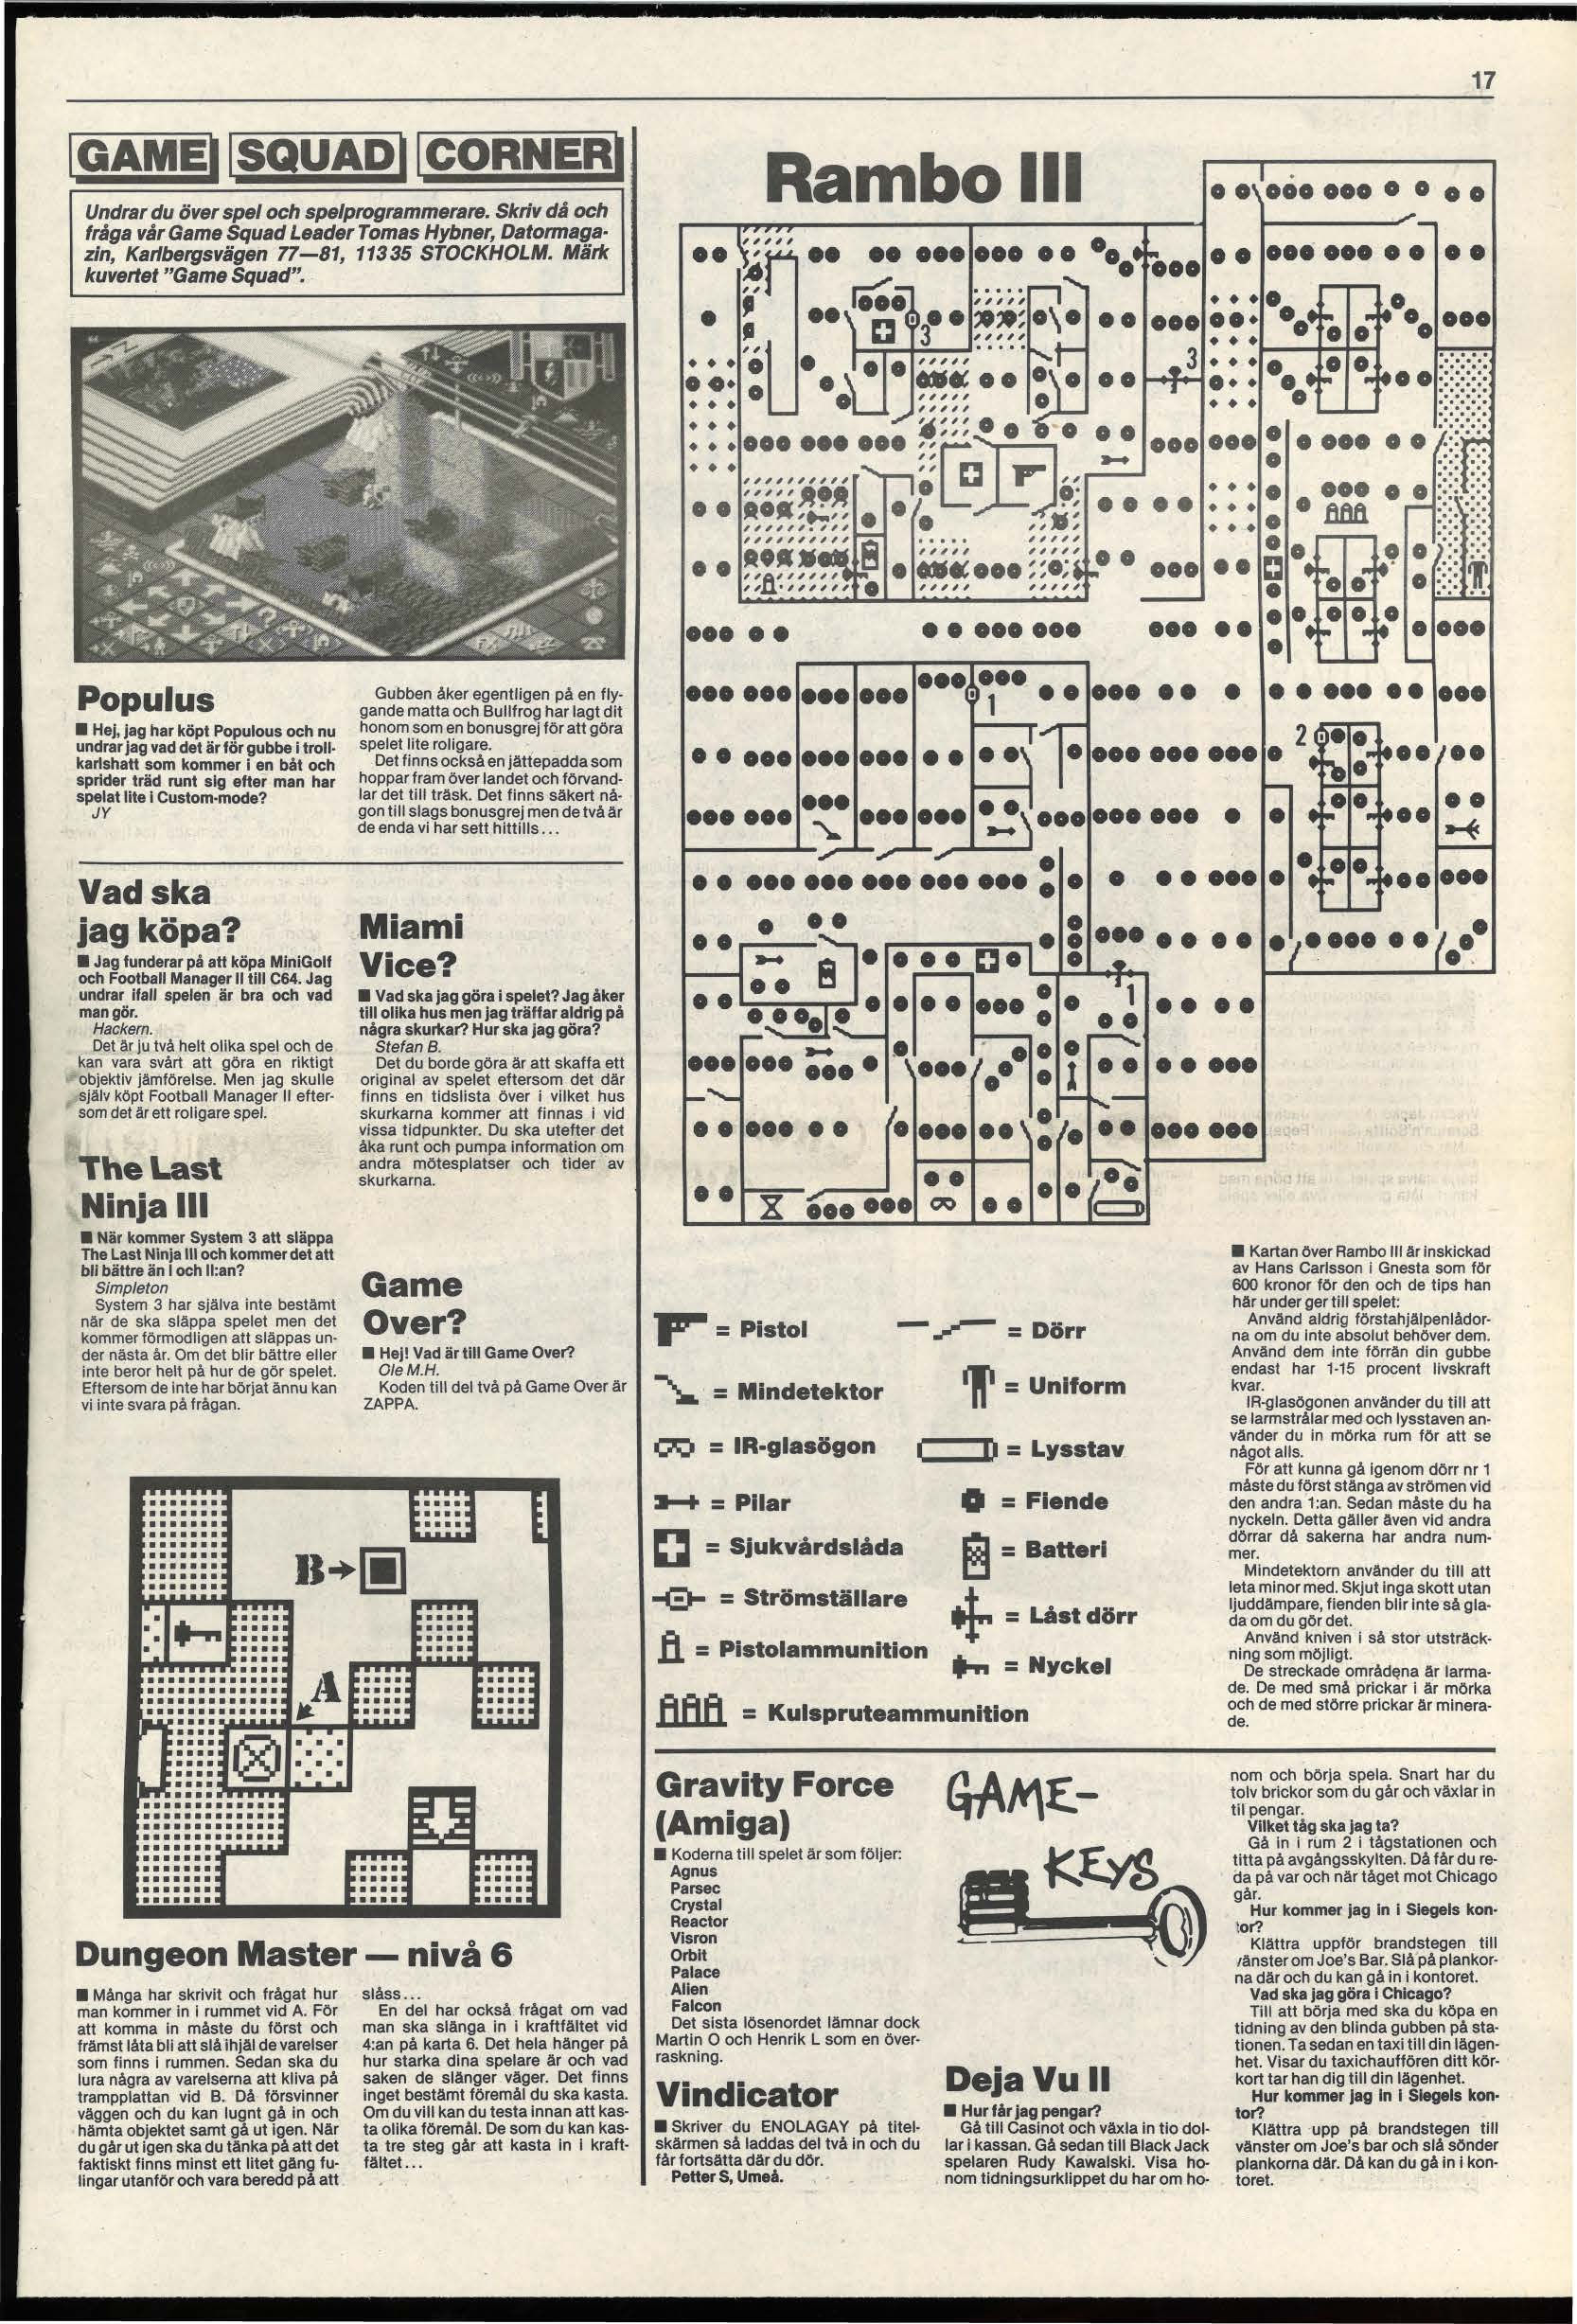 Dungeon Master Hints published in Swedish magazine 'Datormagazin', Vol 1989 No 14 October 1989, Page 17